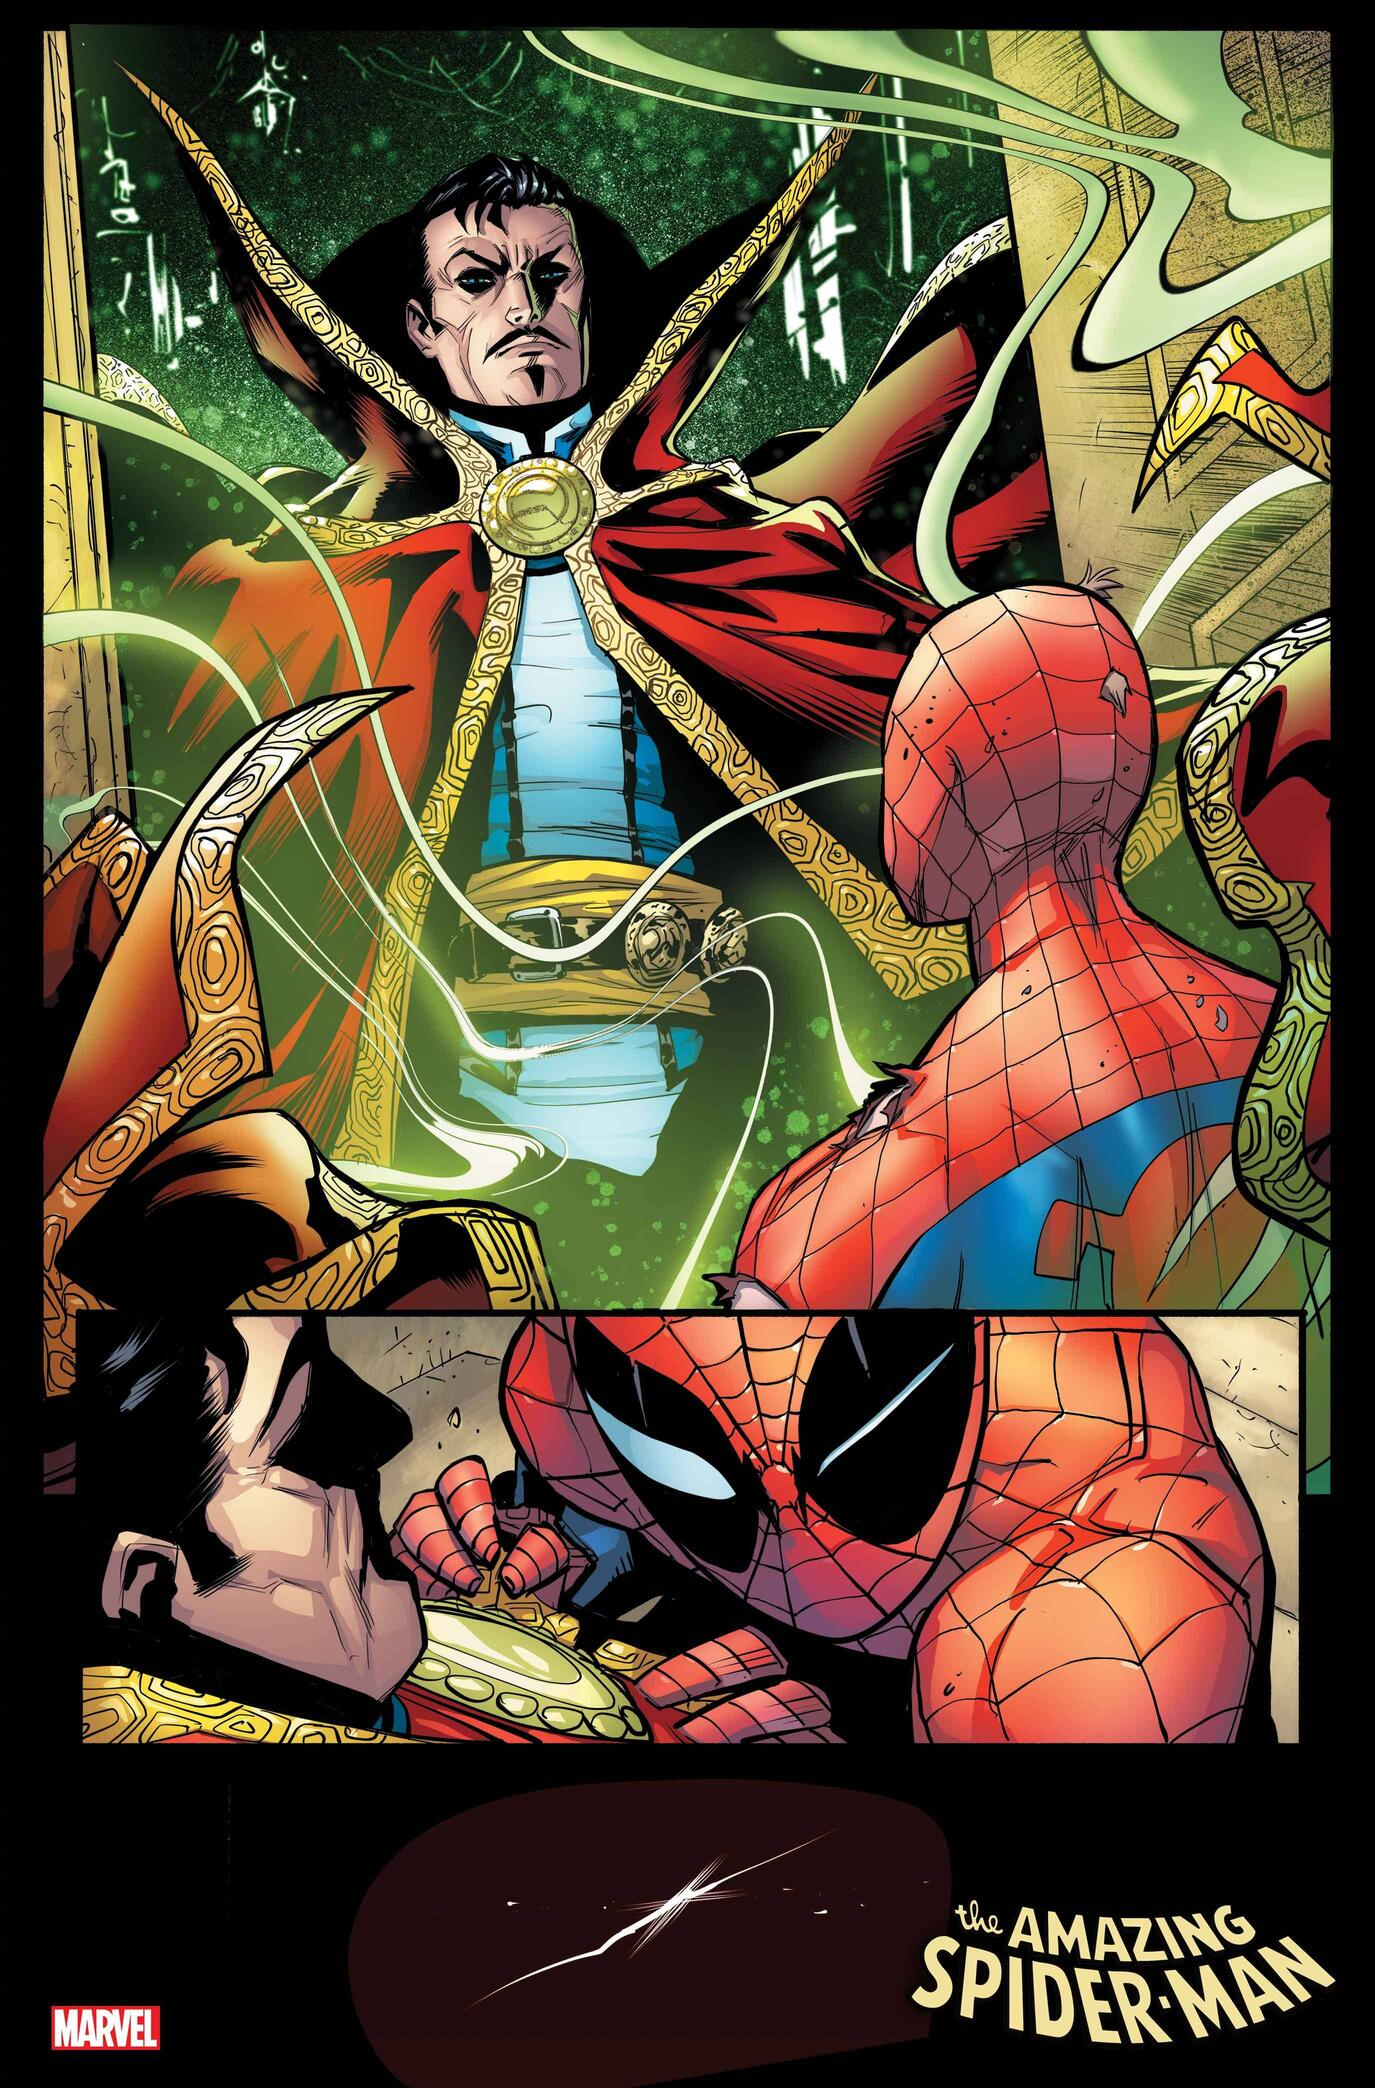 AMAZING SPIDER-MAN #50 preview interiors by Patrick Gleason and Edgar Delgado